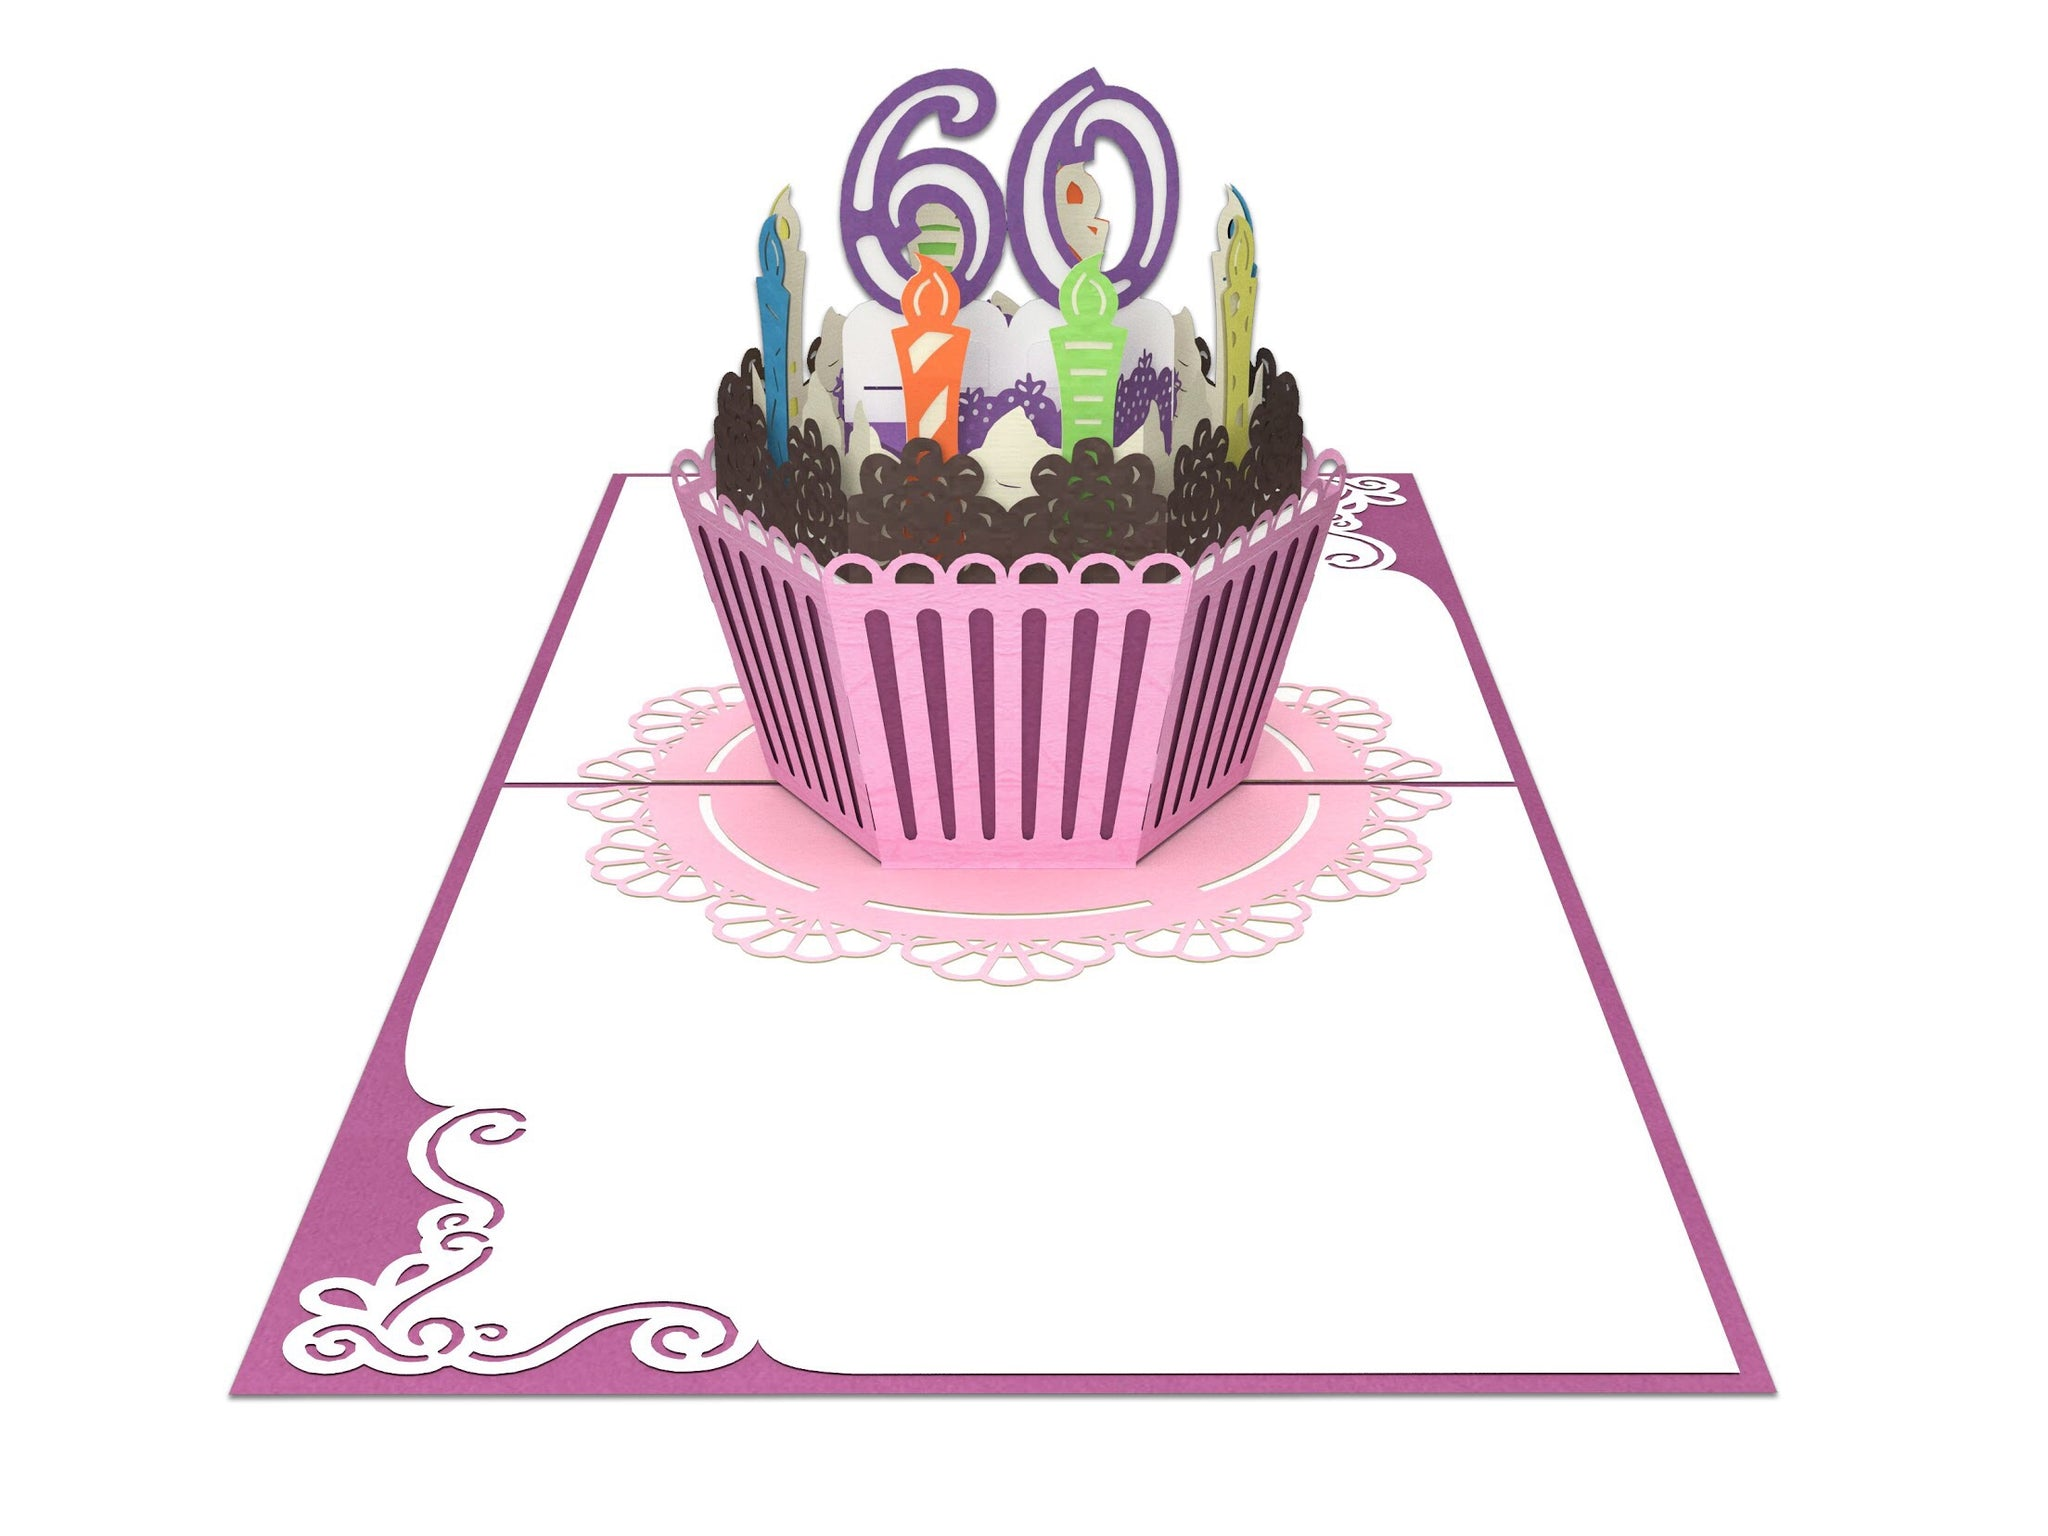 60th Birthday Cake For Her 3D Creative Popcards